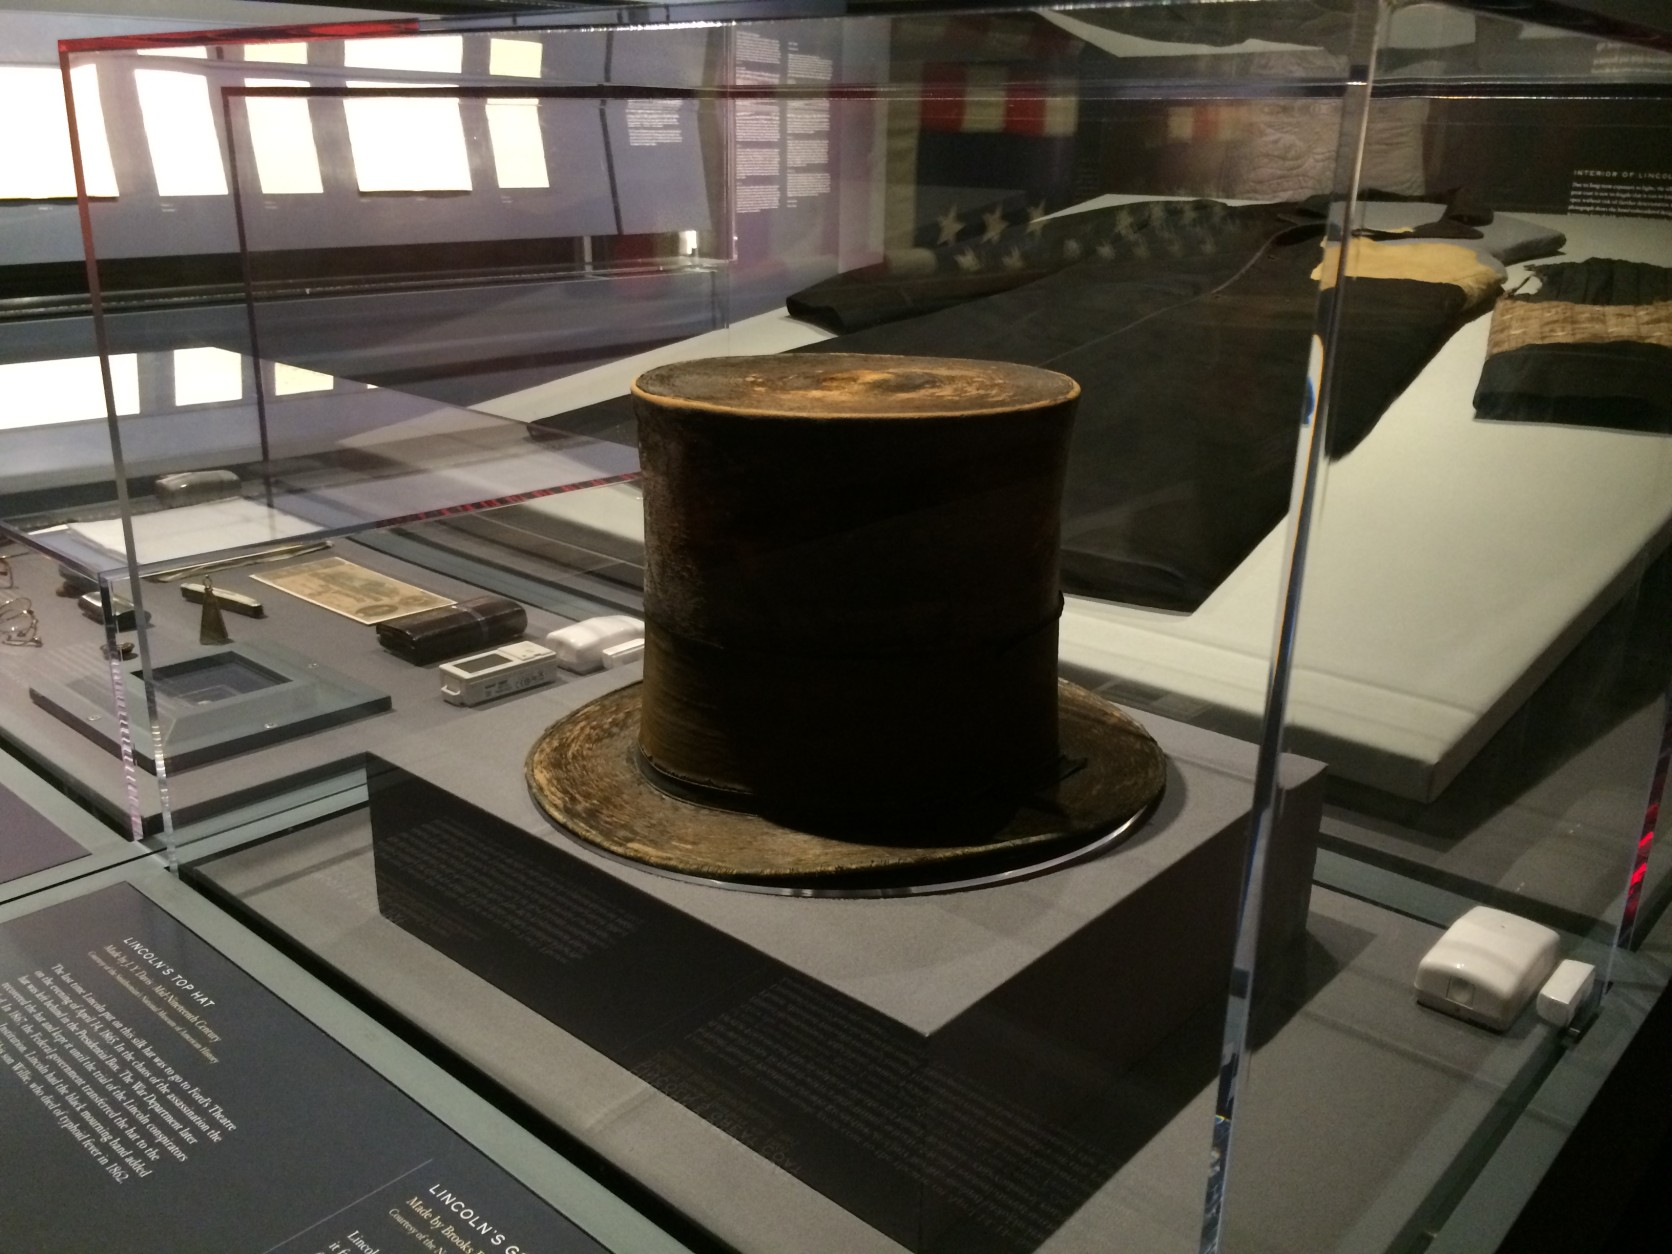 Lincoln's clothing, including his famous top hat, will be part of the exhibit. (TOP/Nick Iannelli)